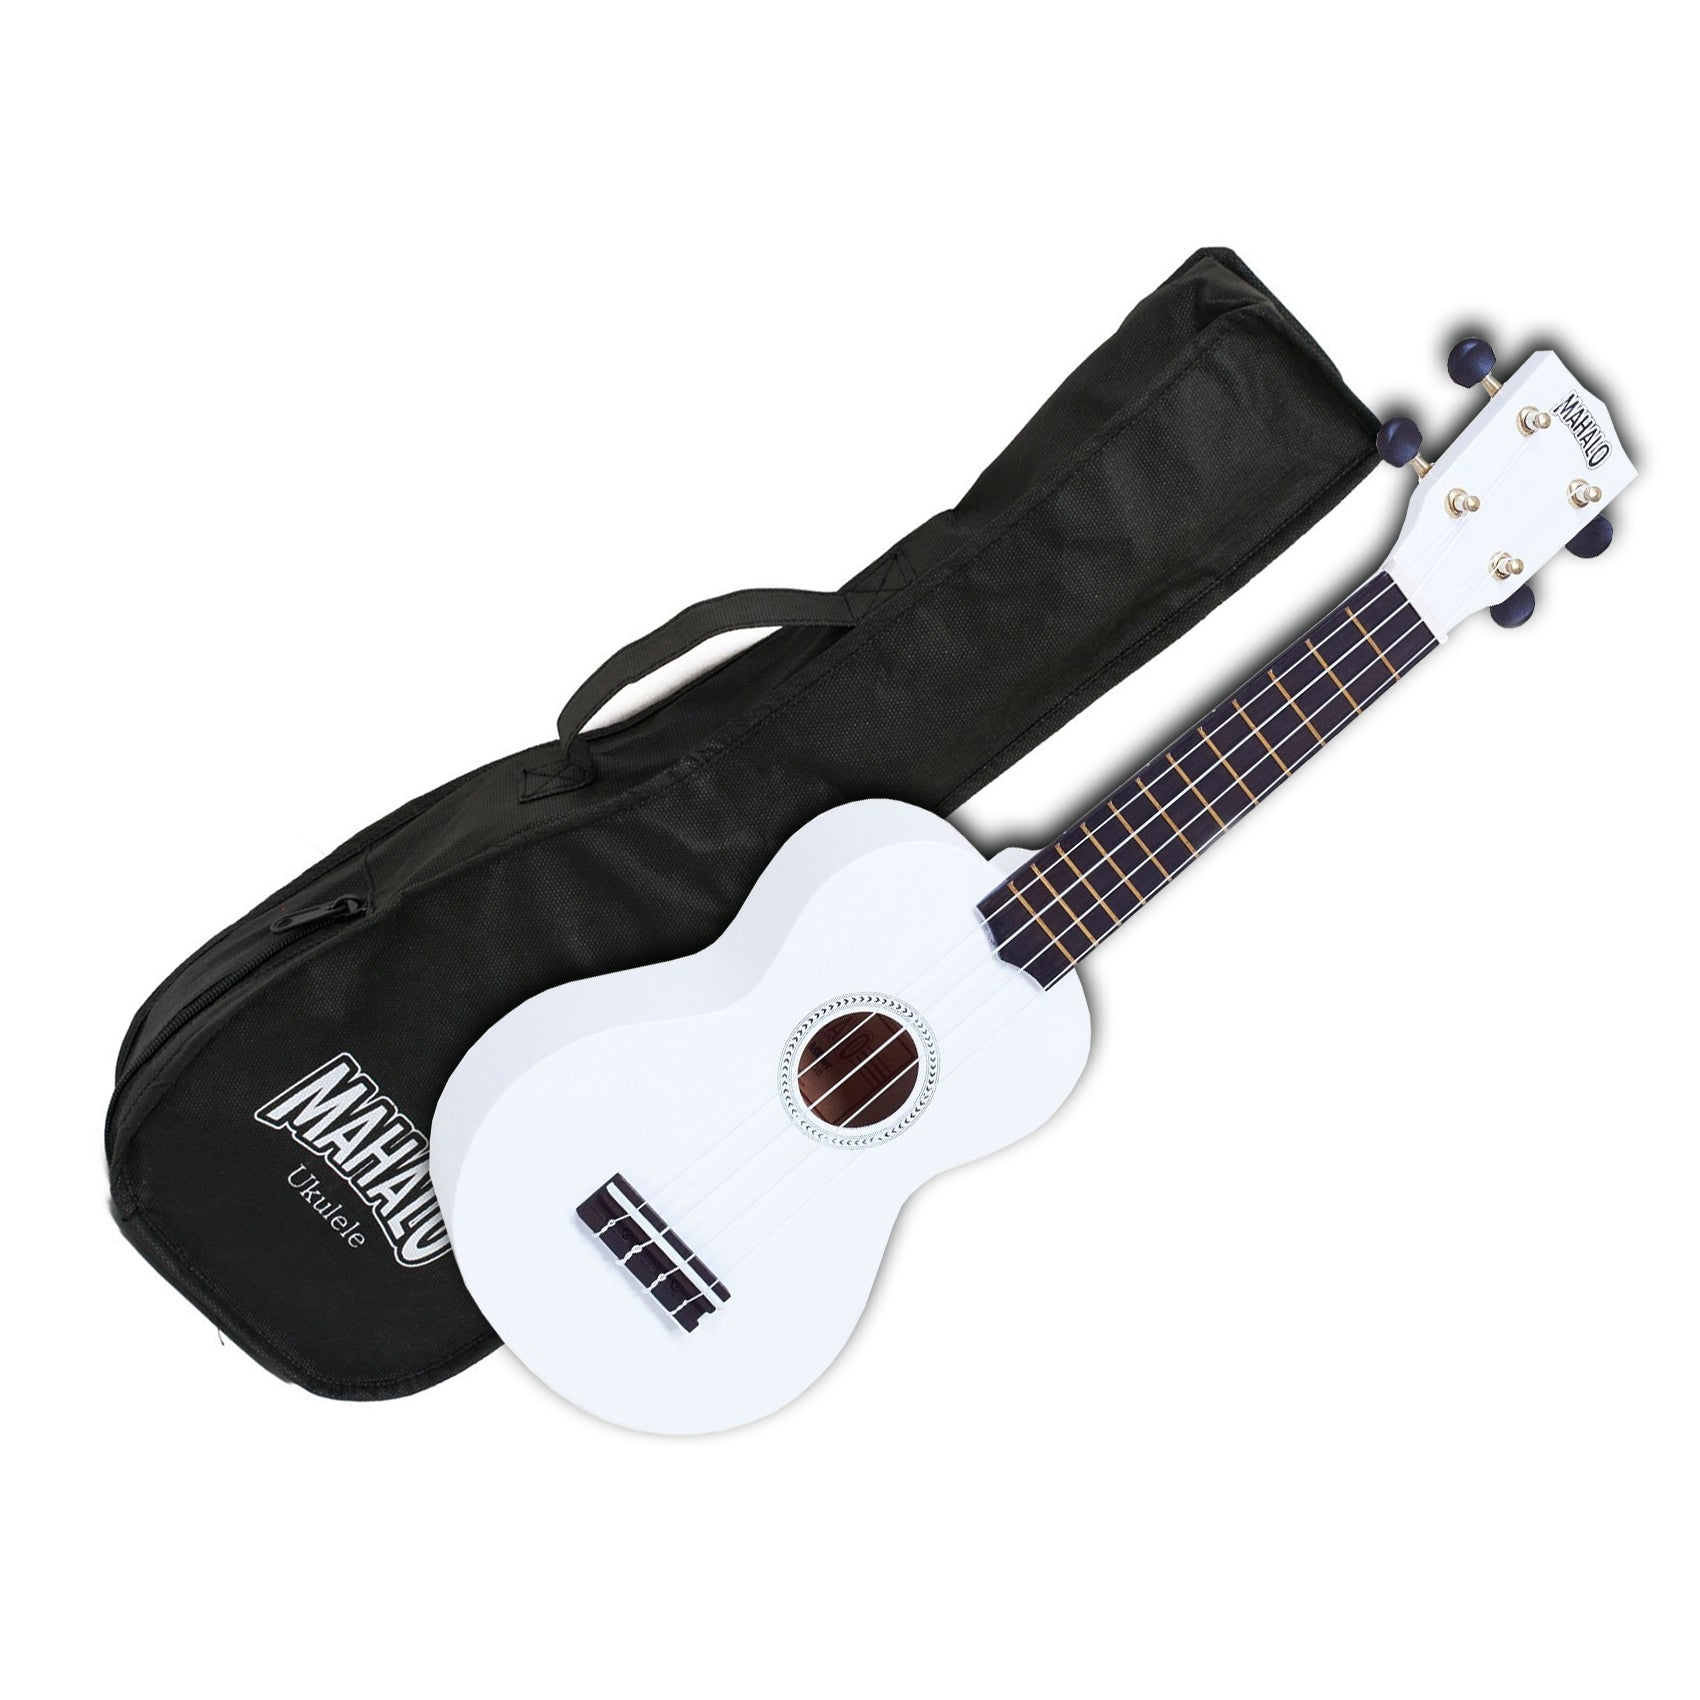 Mahalo MR1-WT Soprano Ukulele w/ Bag - White